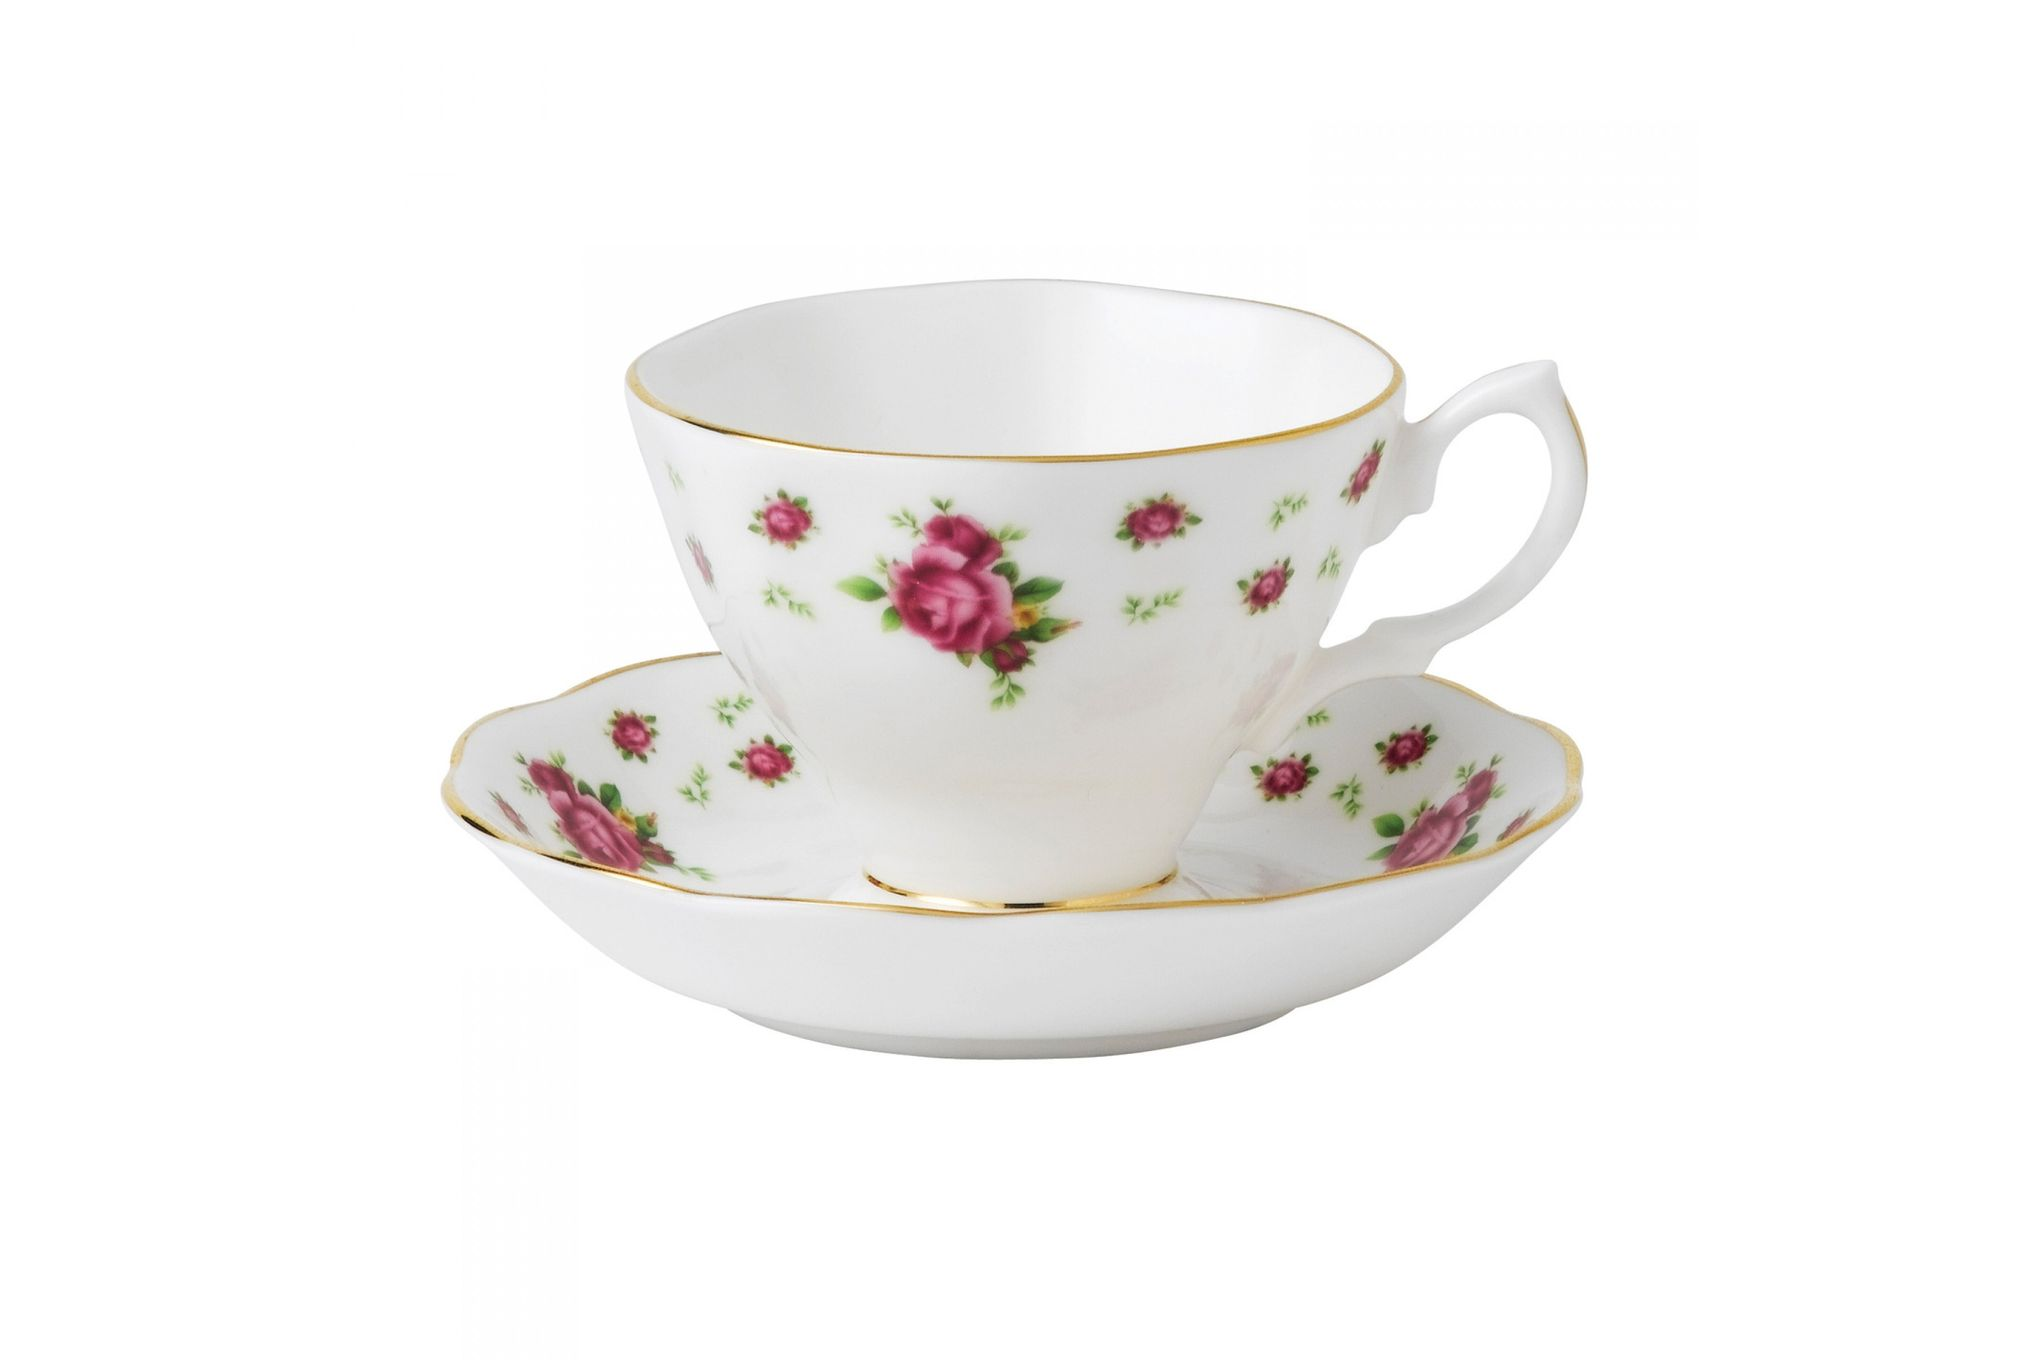 Royal Albert New Country Roses White Teacup & Saucer Boxed thumb 1